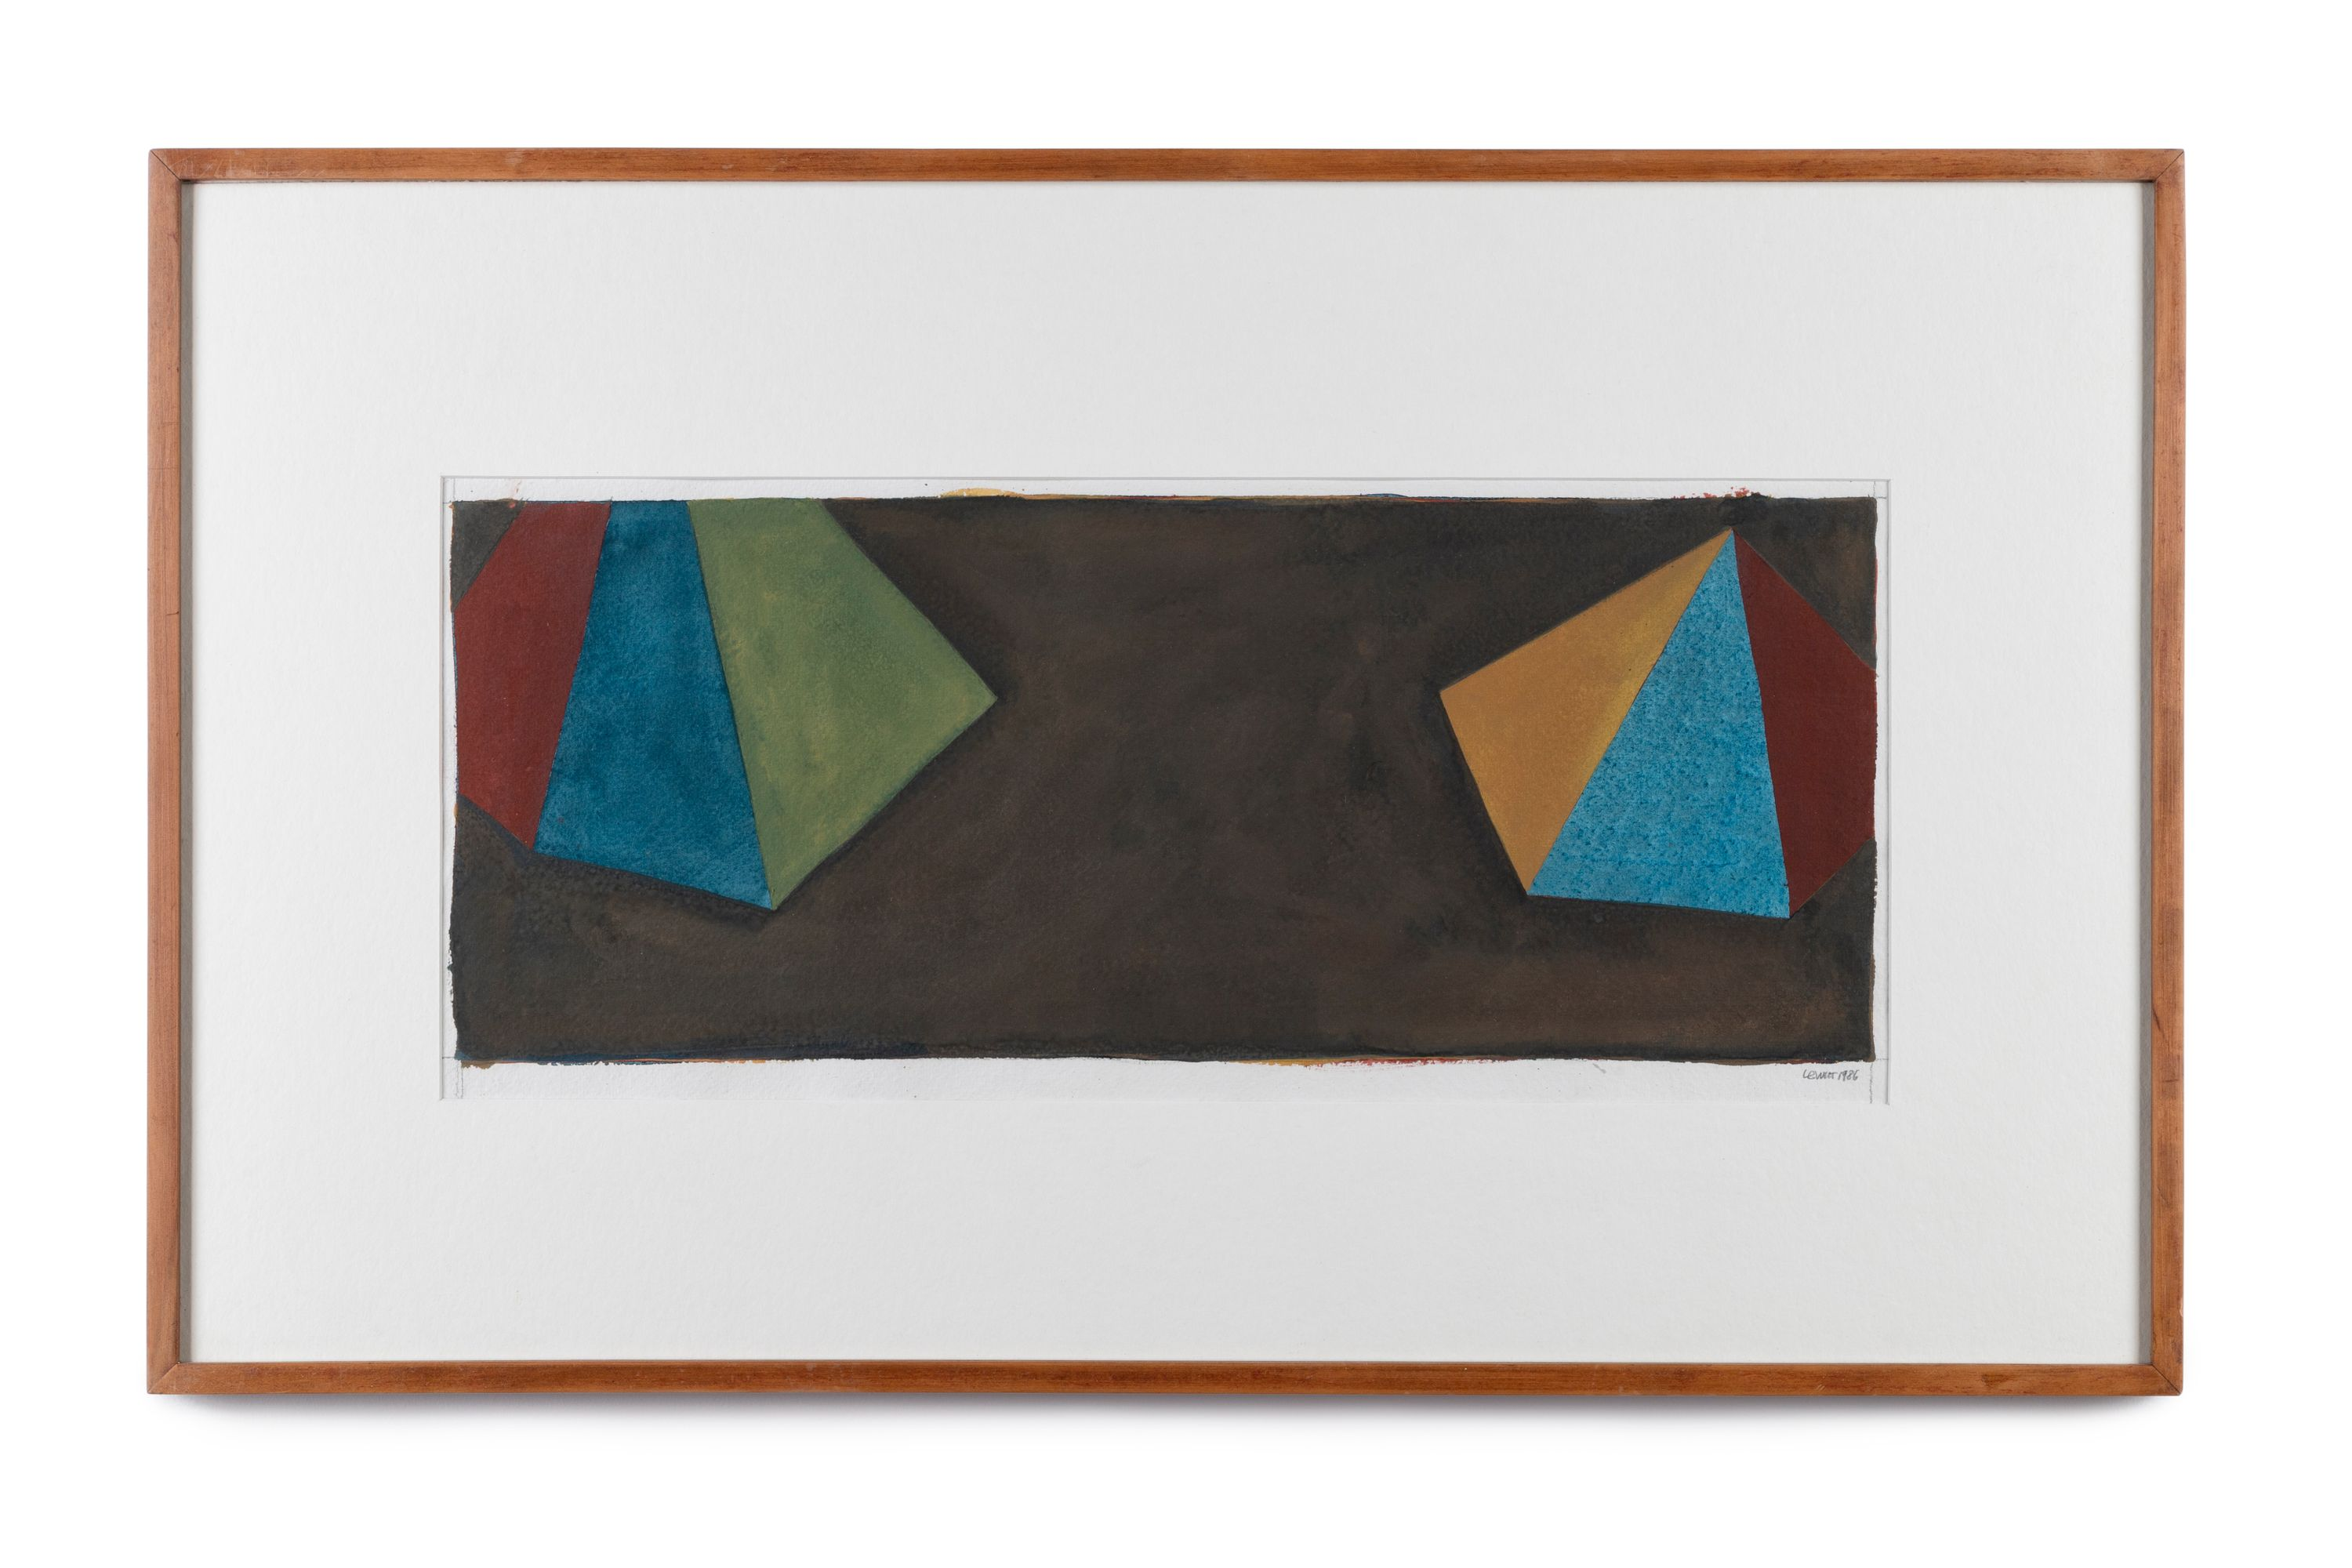 Untitled by Sol Lewitt, Tommaso Calabro Gallery